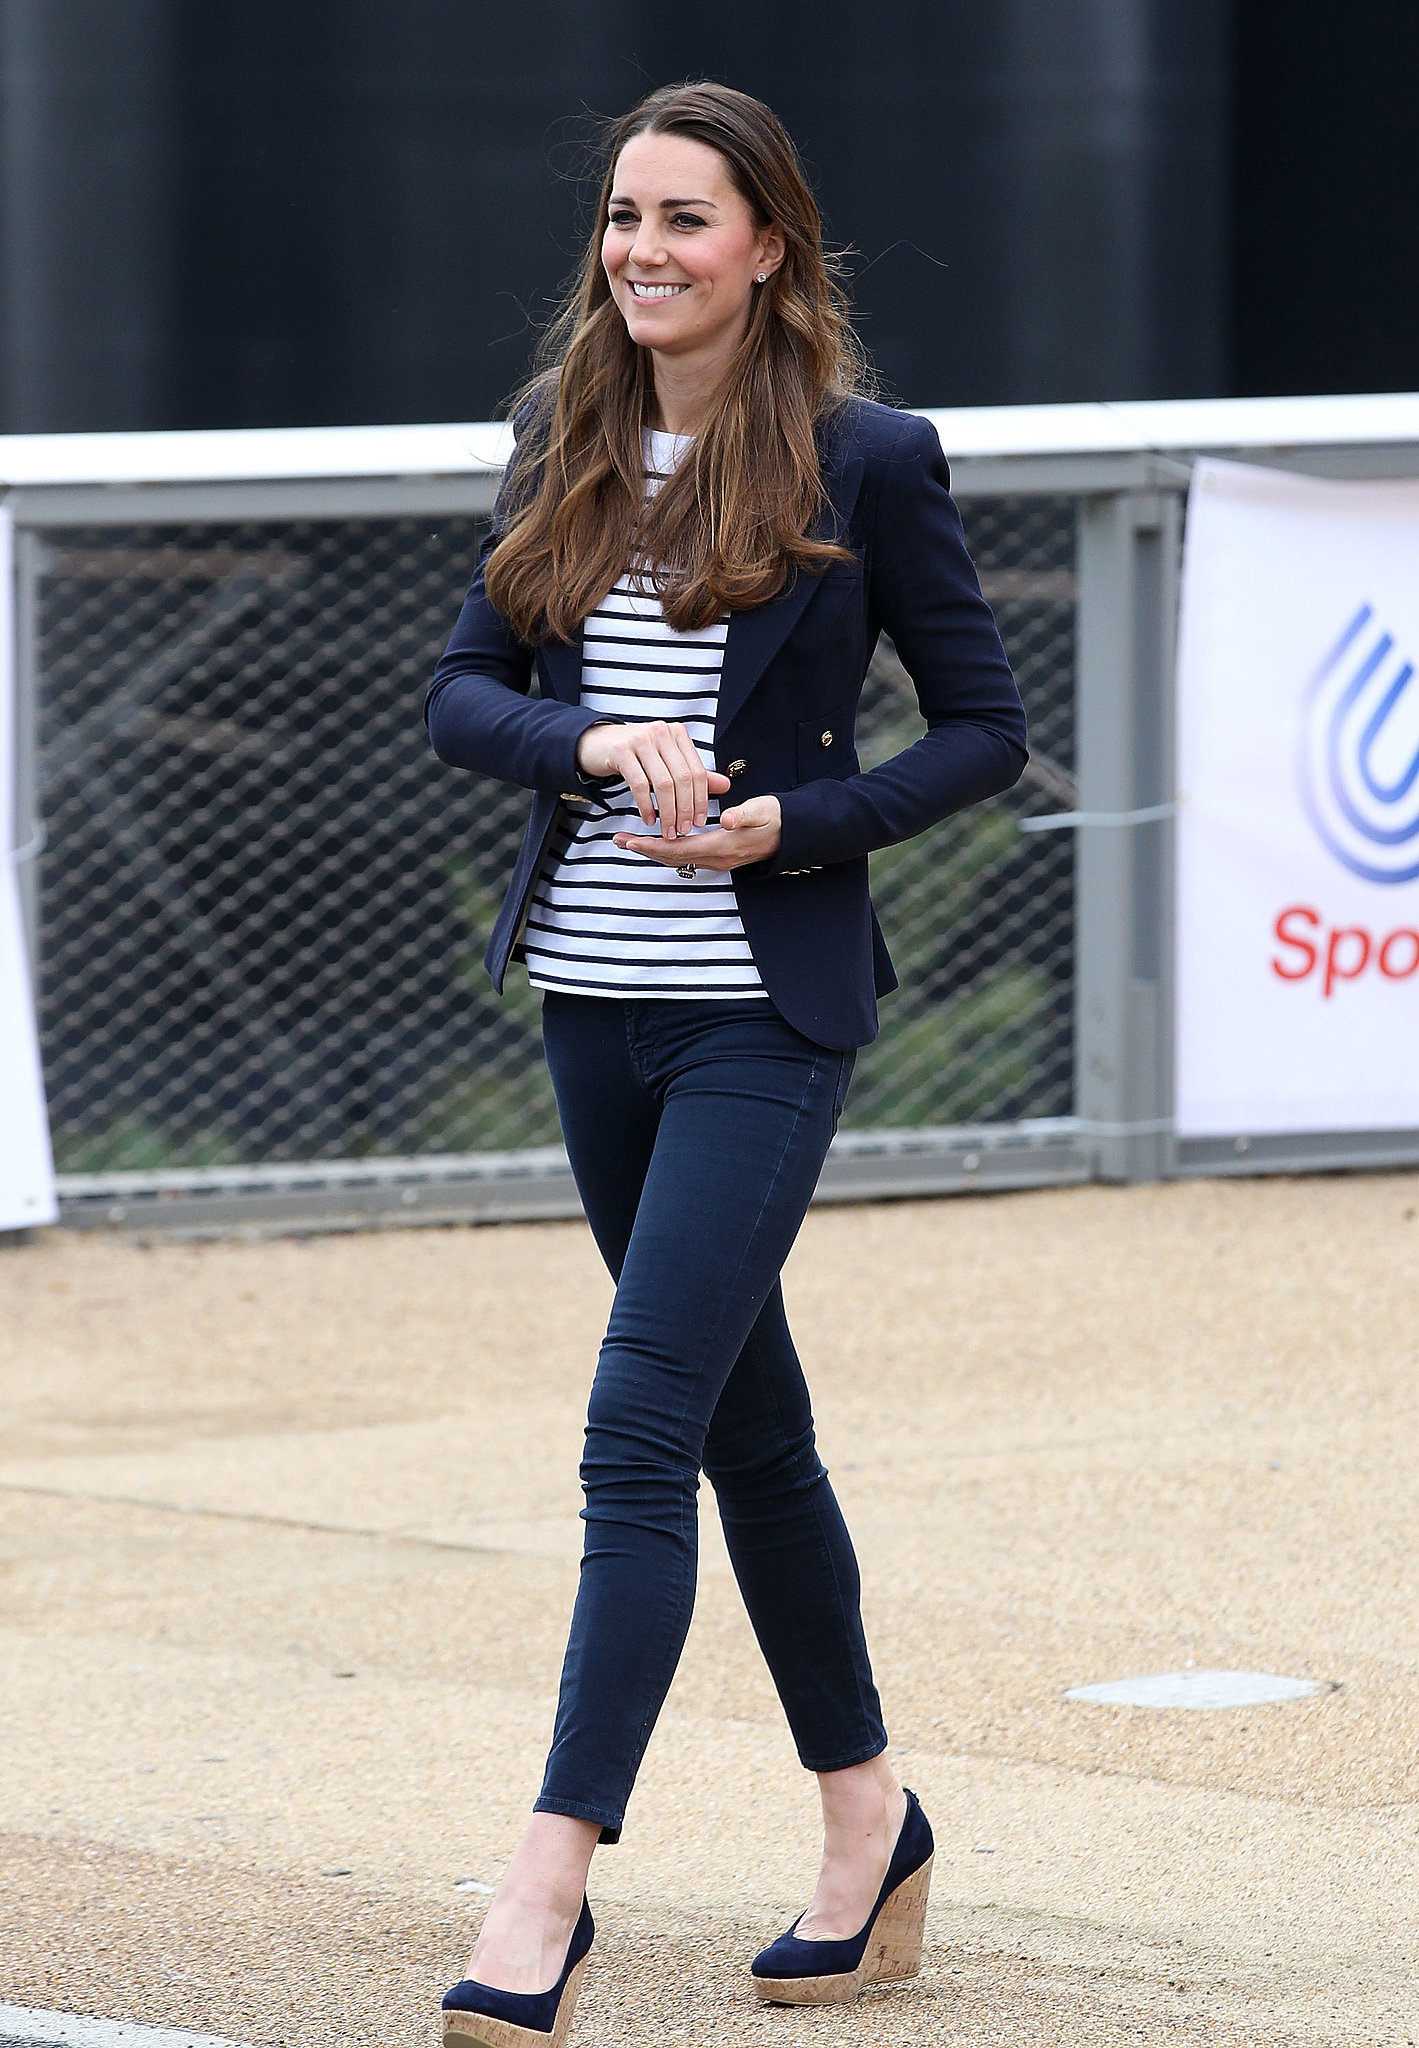 In October 2013, the duchess made her first postbaby solo appearance at a Sportaid athlete workshop in London.